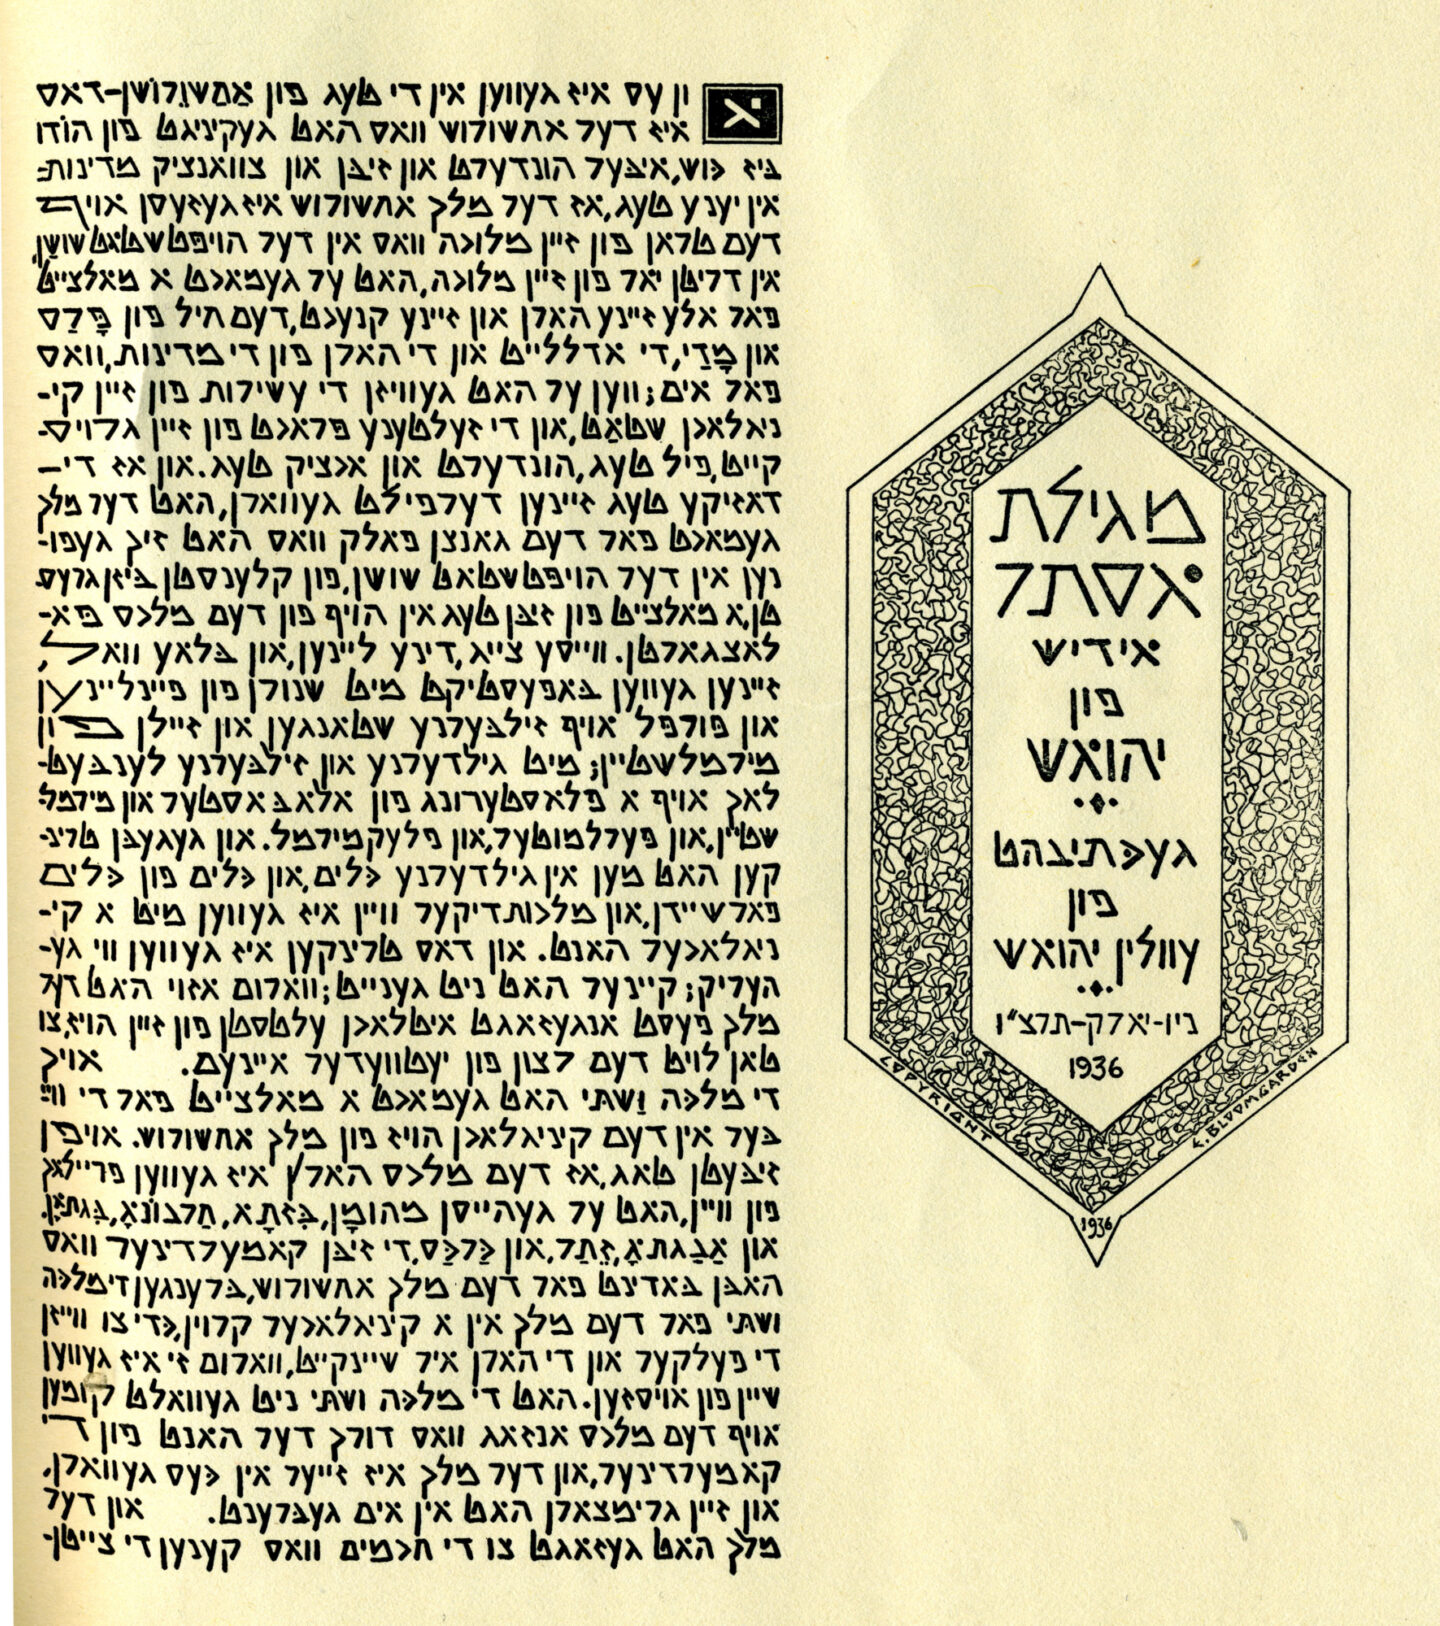 "<p><em>Megiles Ester</em>, trans­lat­ed into Yid­dish by Yehoash, cal­lig­ra­phy by Eve­lyn Yehoash, pub­lished in New York in <span class=""numbers"">1936</span>. Image cour­tesy of the Yeshi­va Uni­ver­si­ty&nbsp;Museum.</p>"